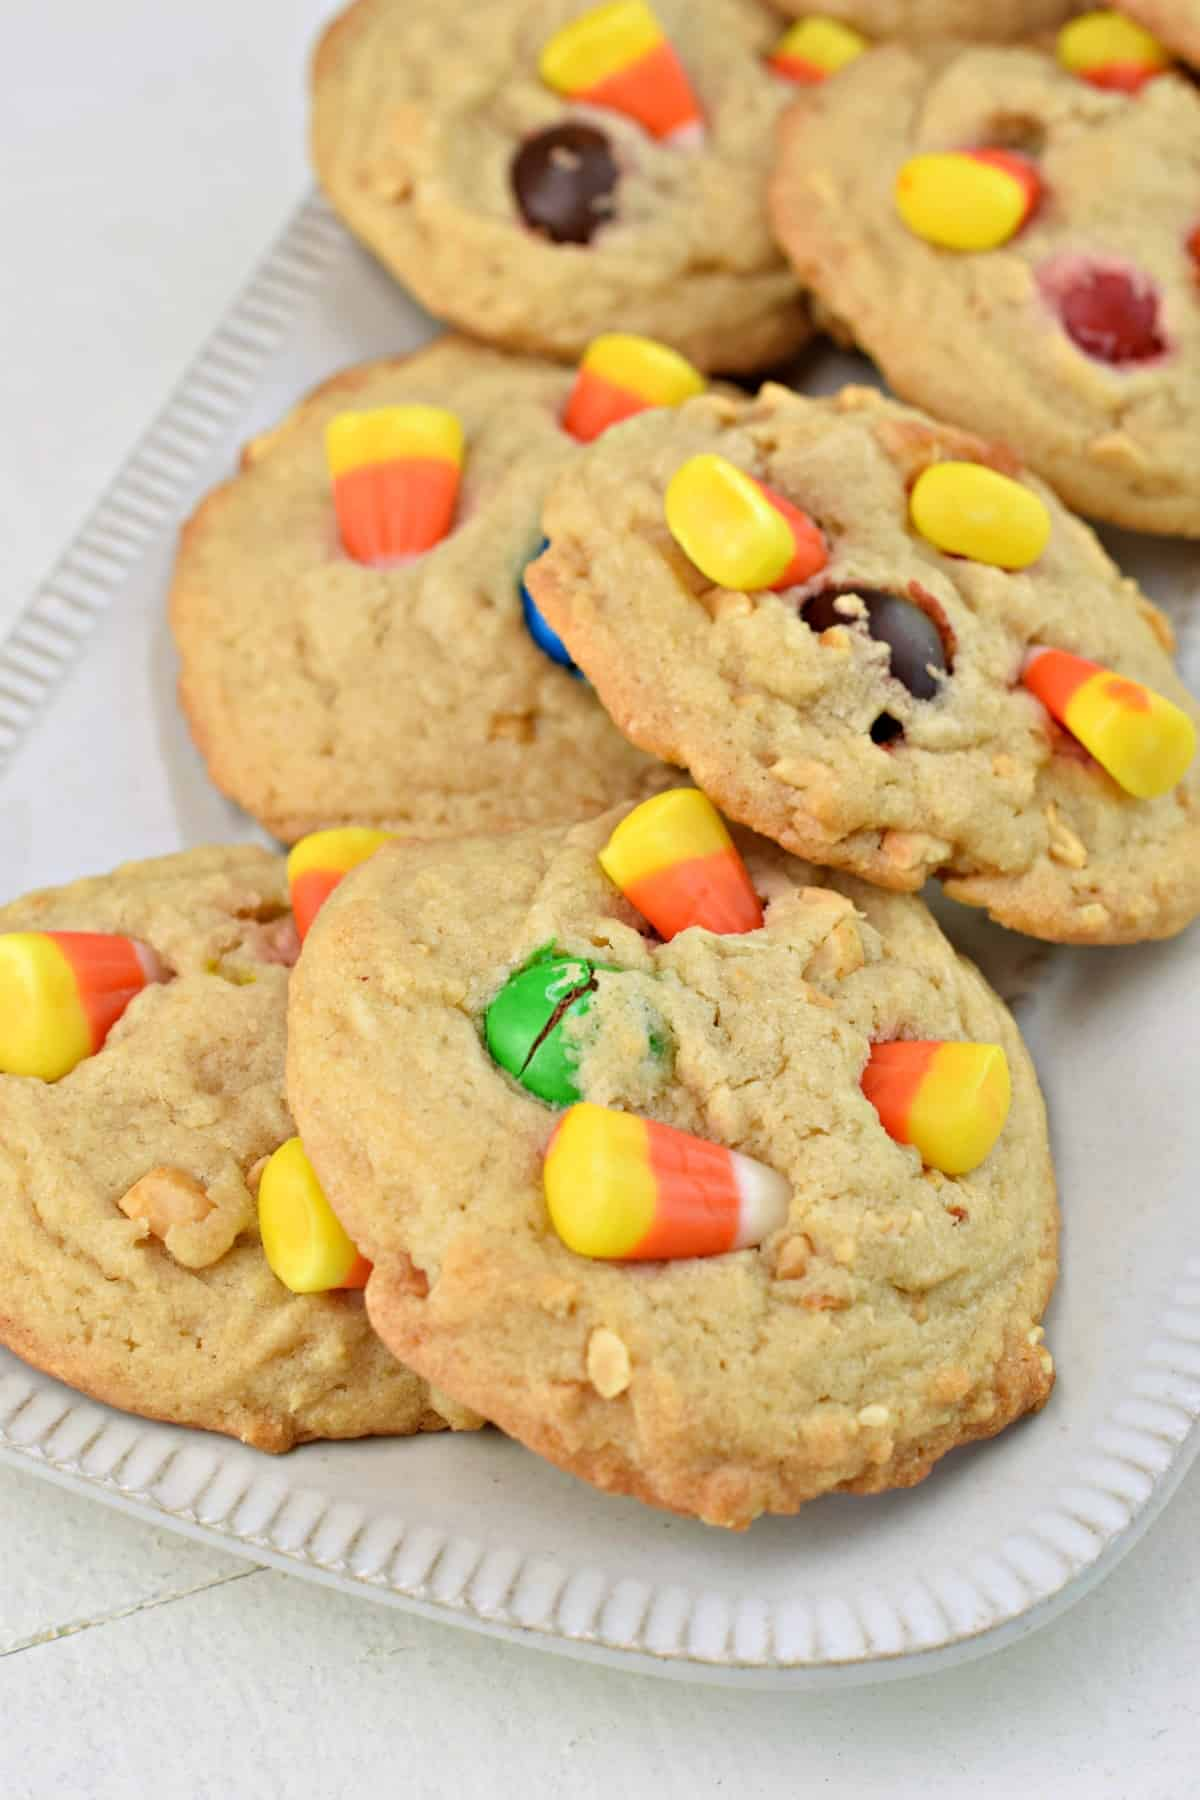 Pay day cookies with candy corn on a white rectangle plate.